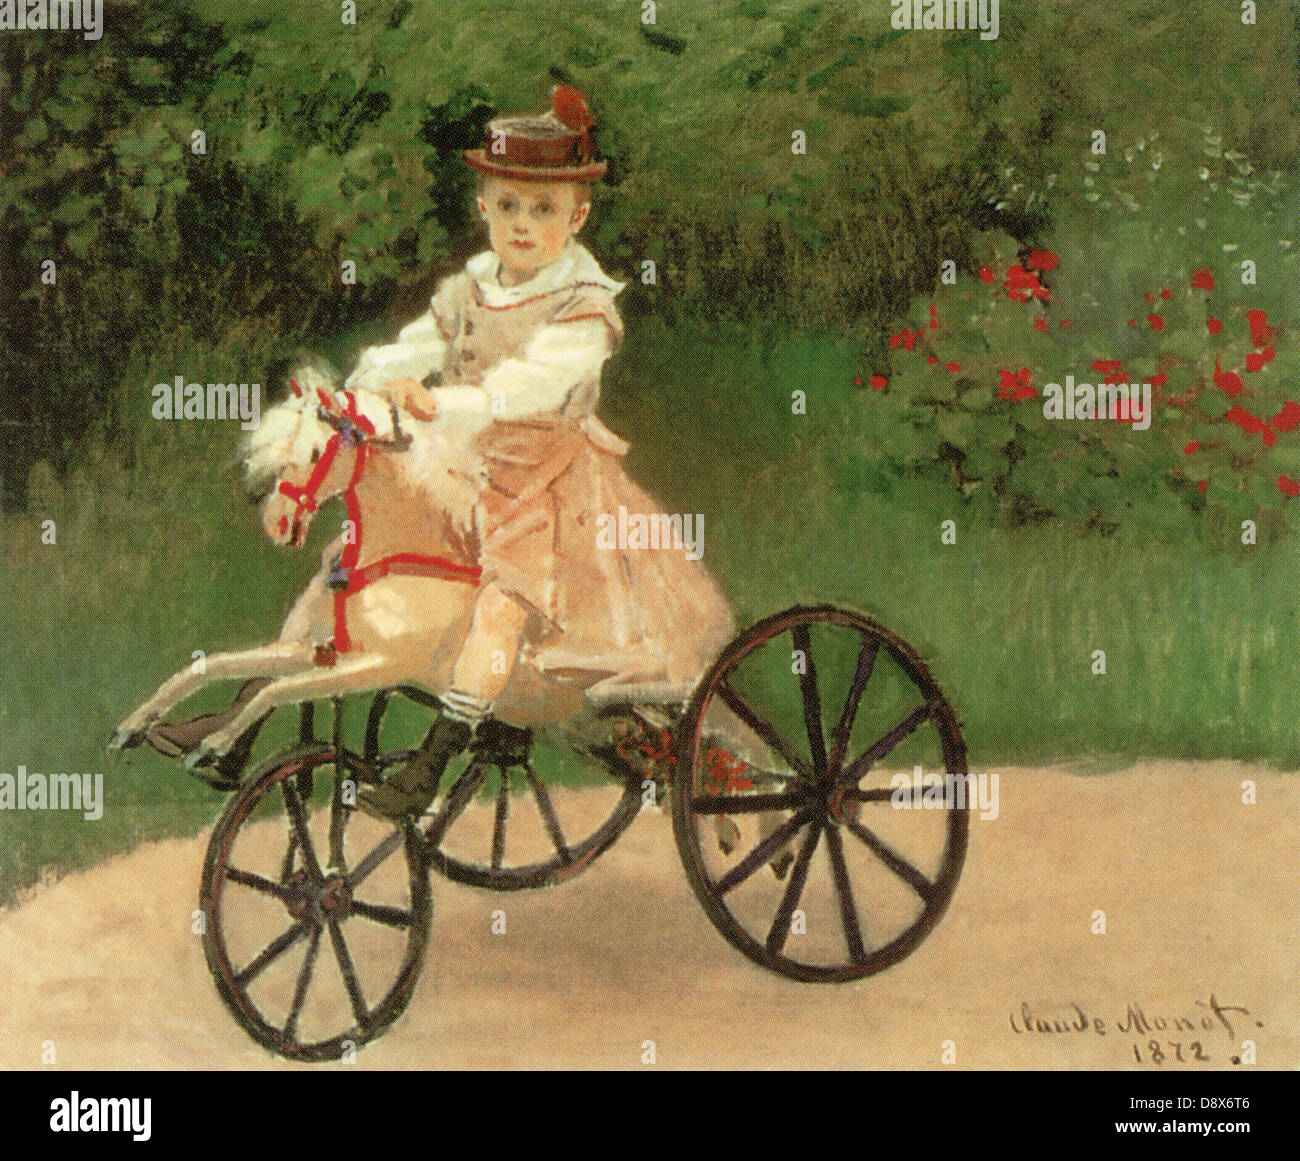 Jean Monet on his Horse Tricycle (1872) by Impressionist painter, Claude Monet - Editorial use only. - Stock Image